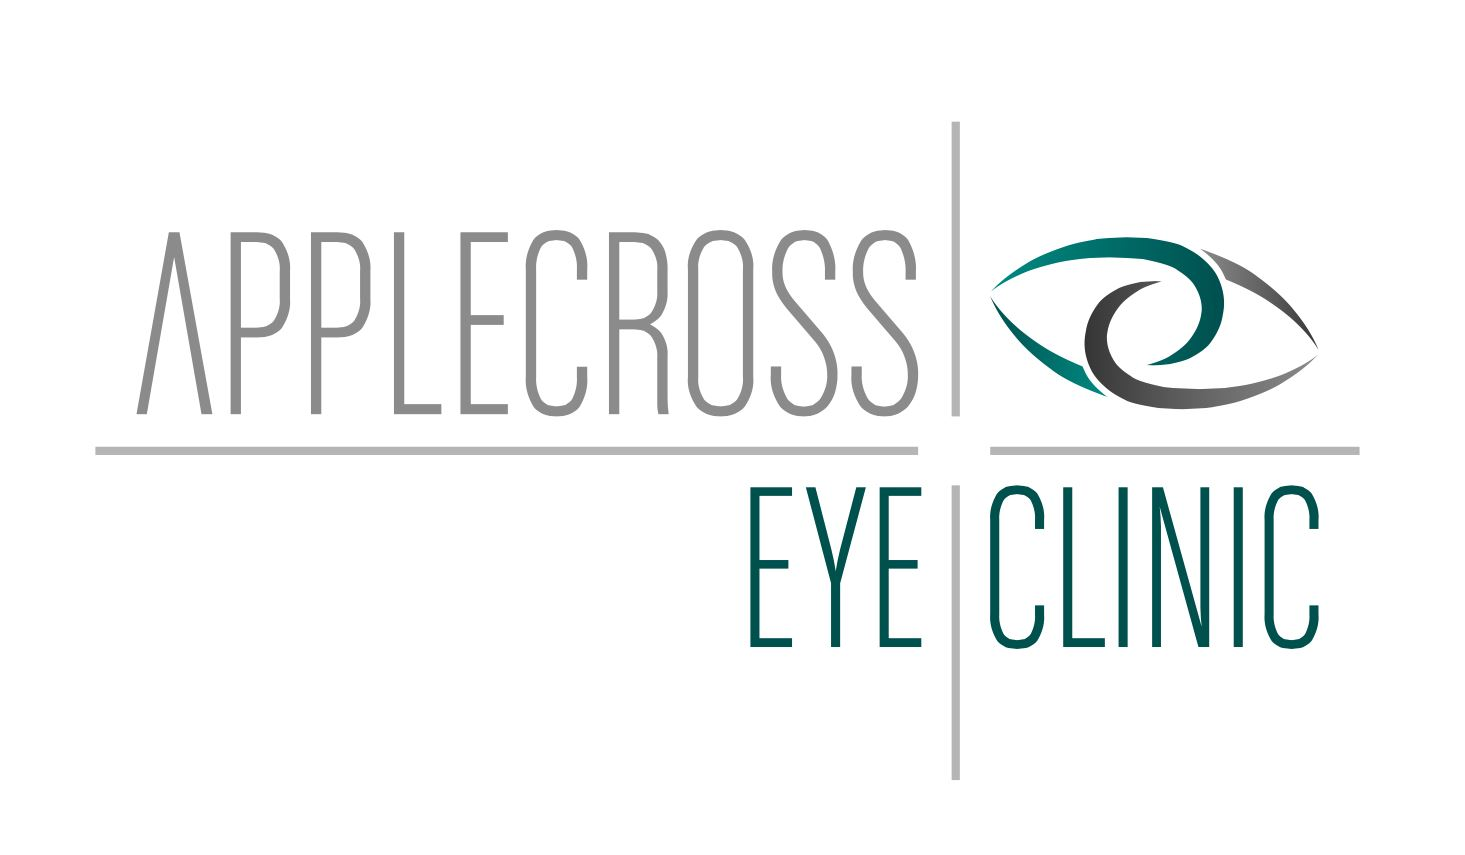 Applecross Eye Clinic Logo